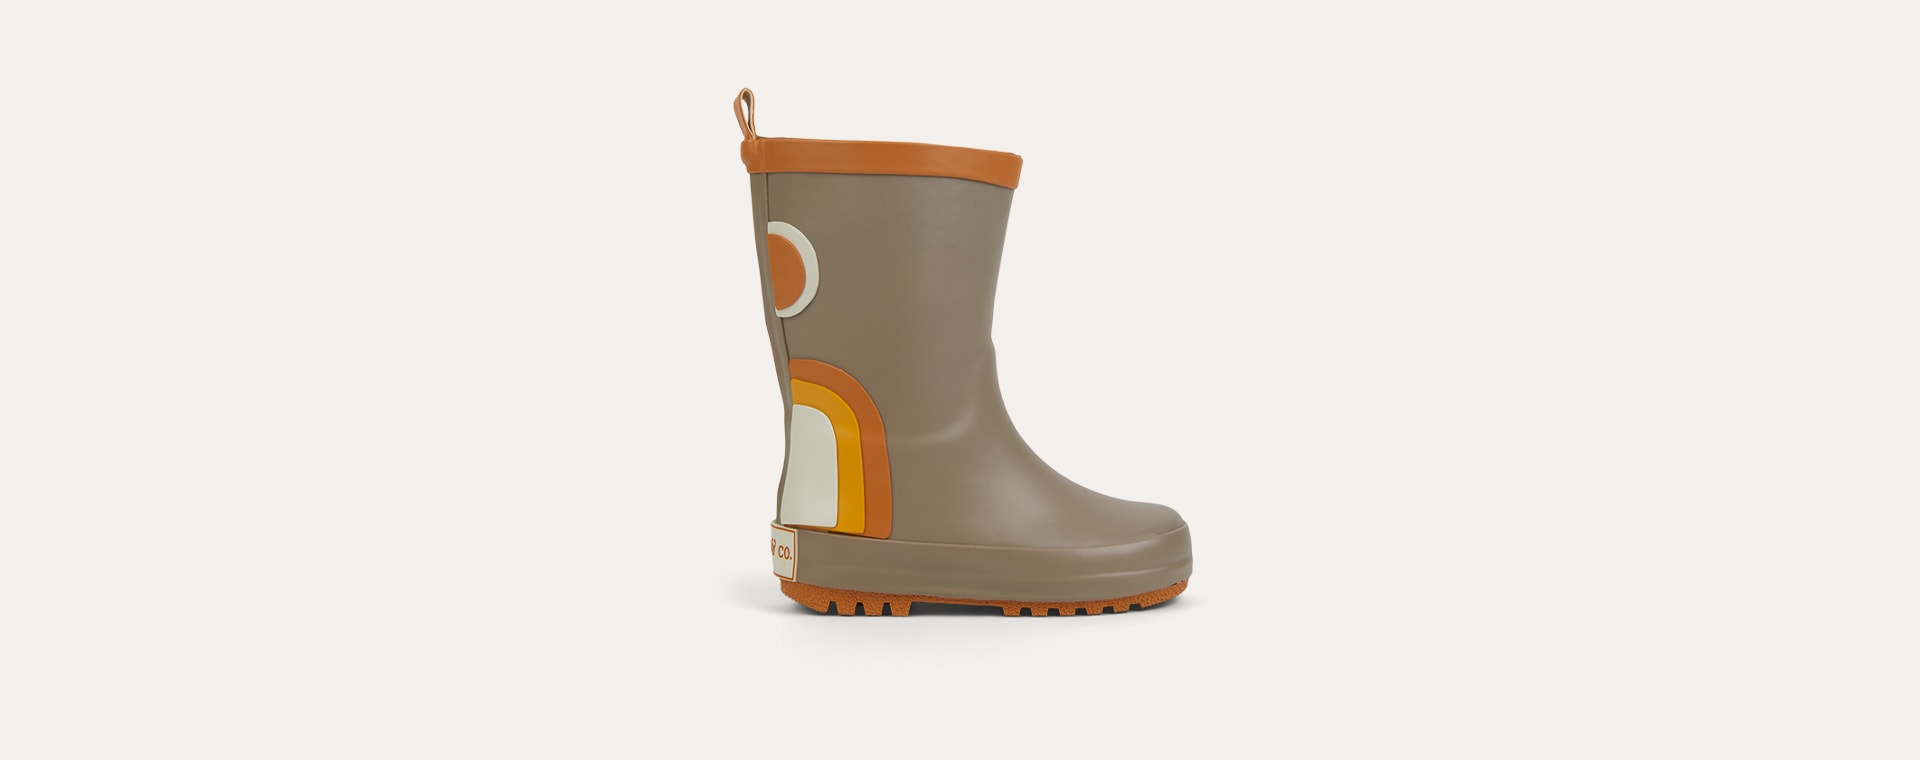 Rainbow-Stone Grech & Co Rubber Boots